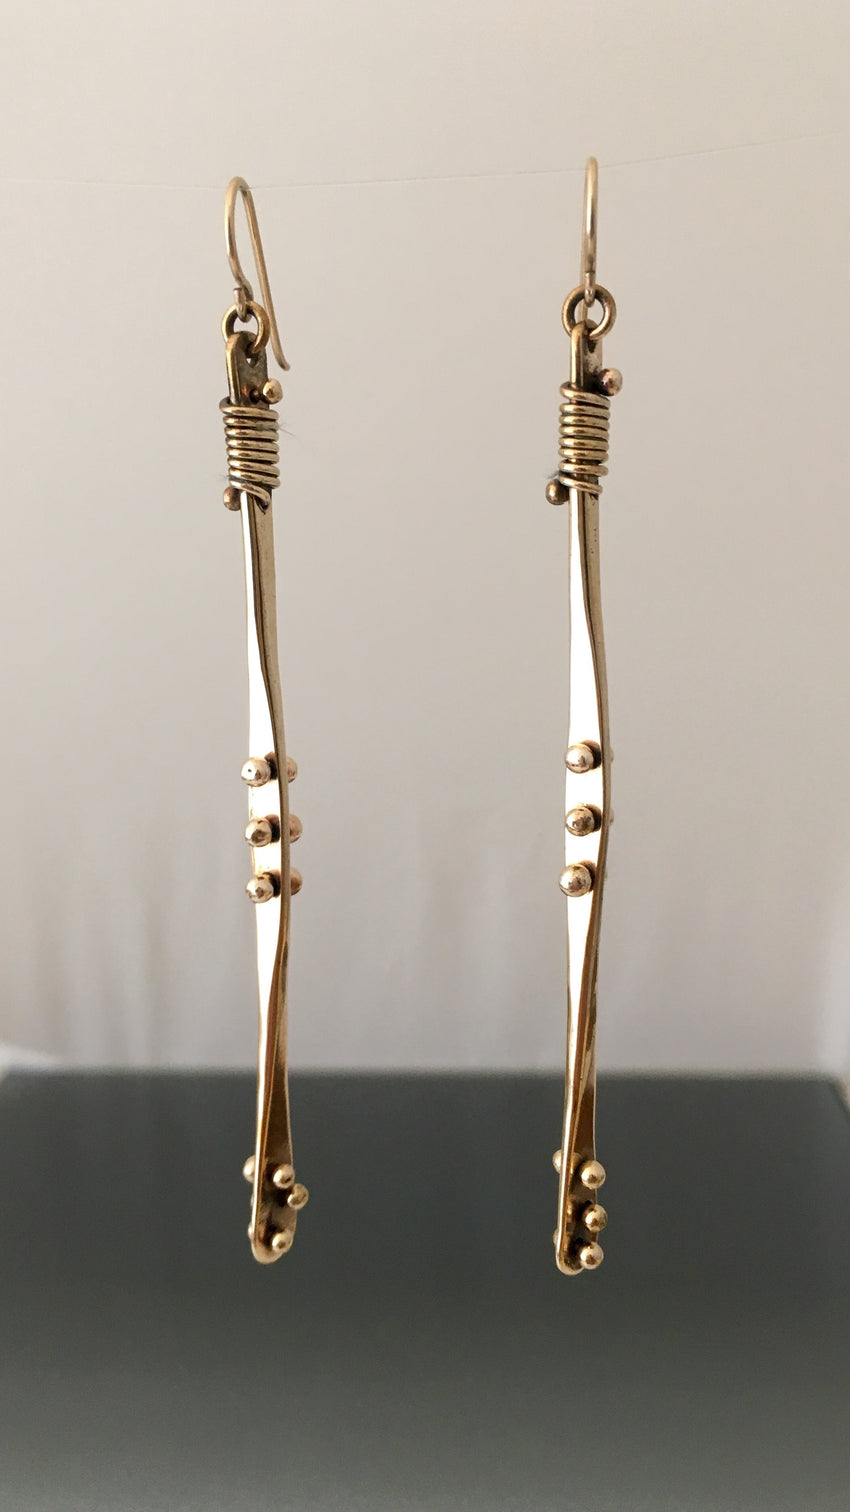 Earrings bronze dangle with peg and wrap - JACK BOYD ART STUDIO and RON BOYD DESIGNS